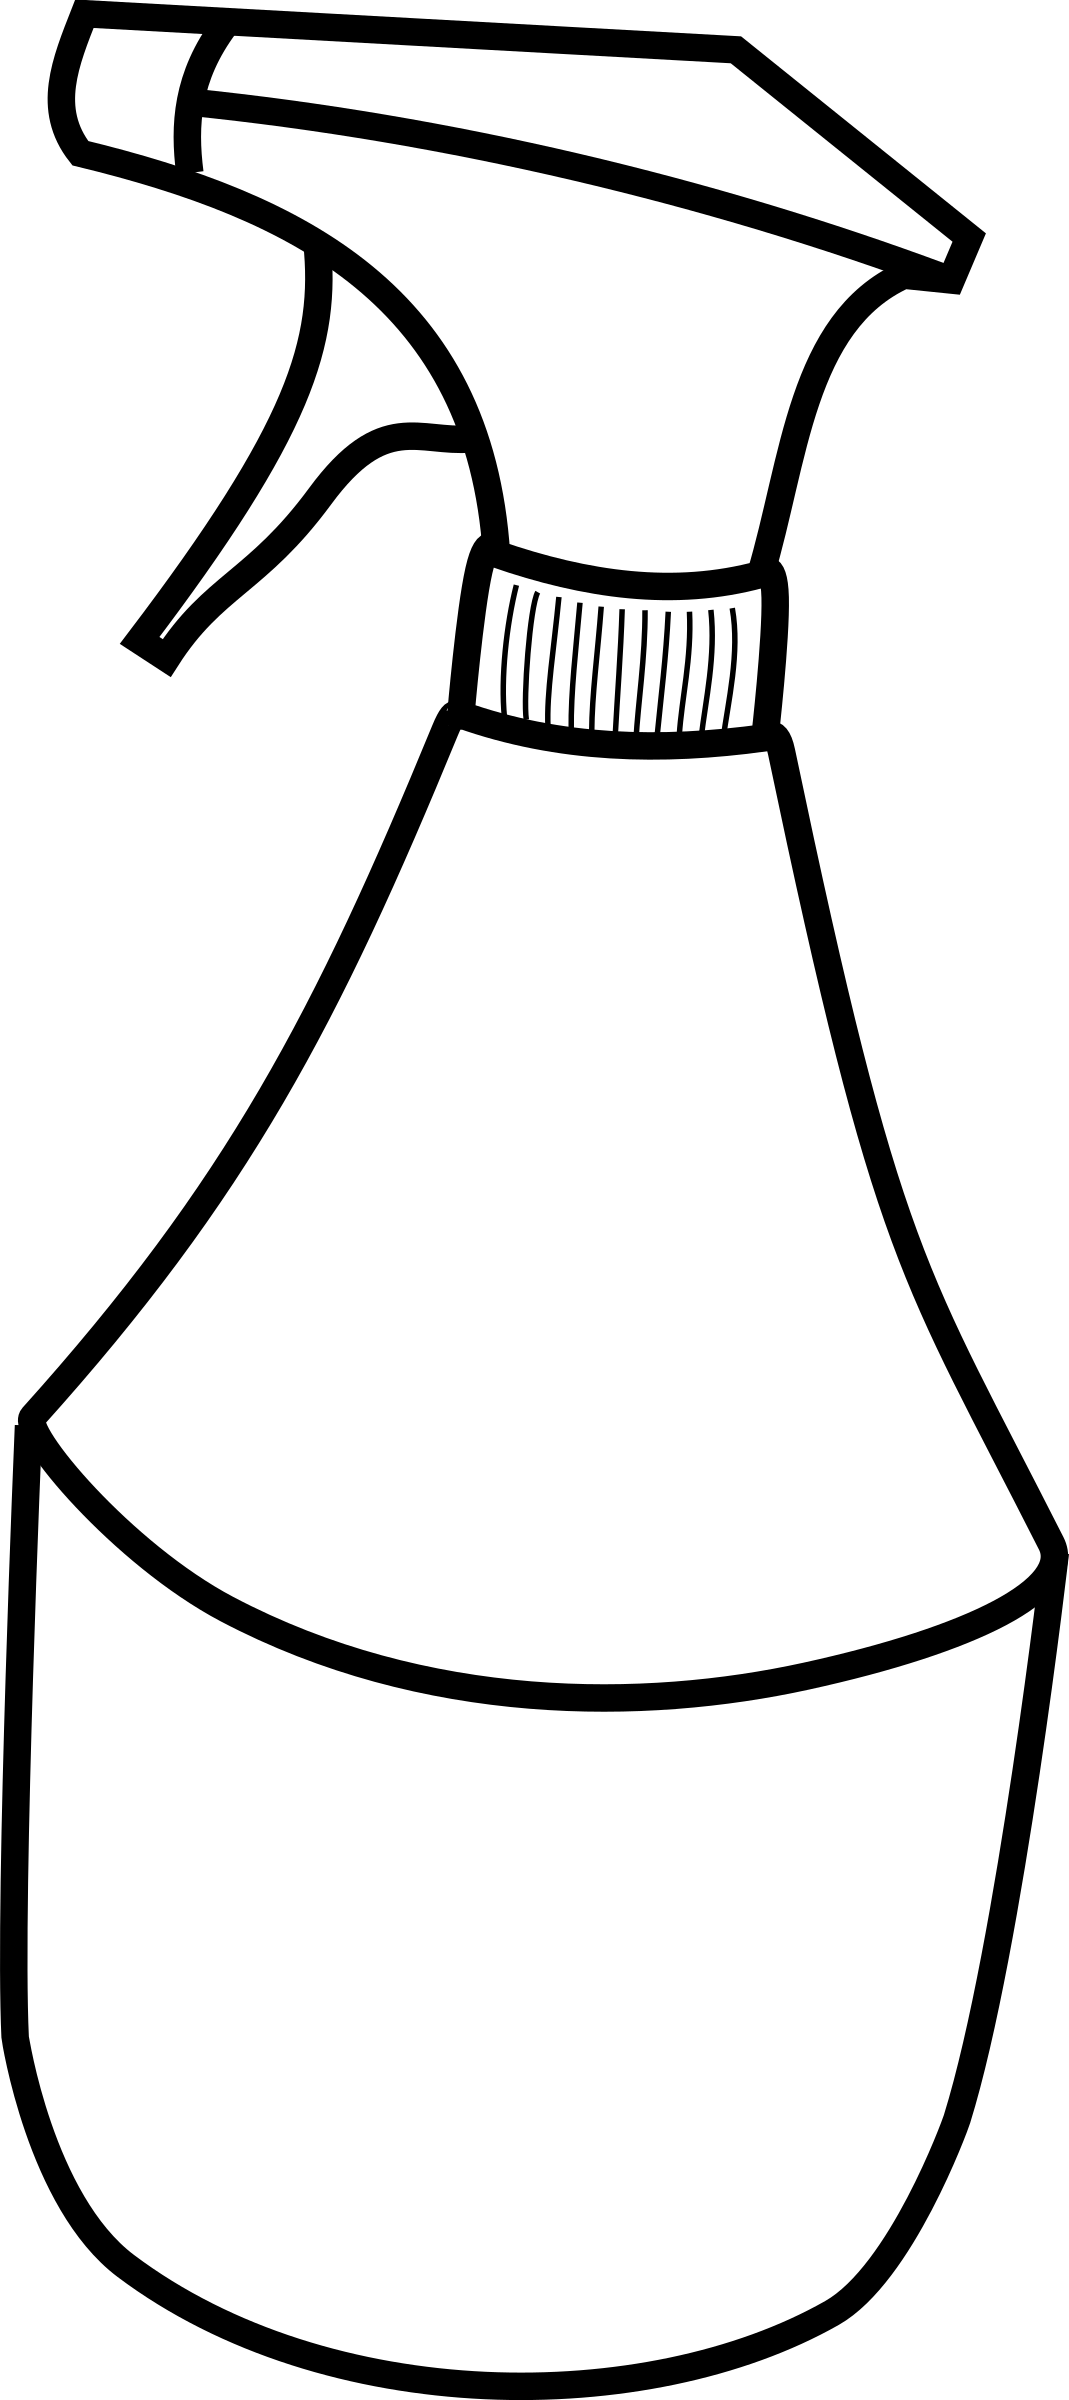 Squirt bottle big image. Clipart kitchen crockery